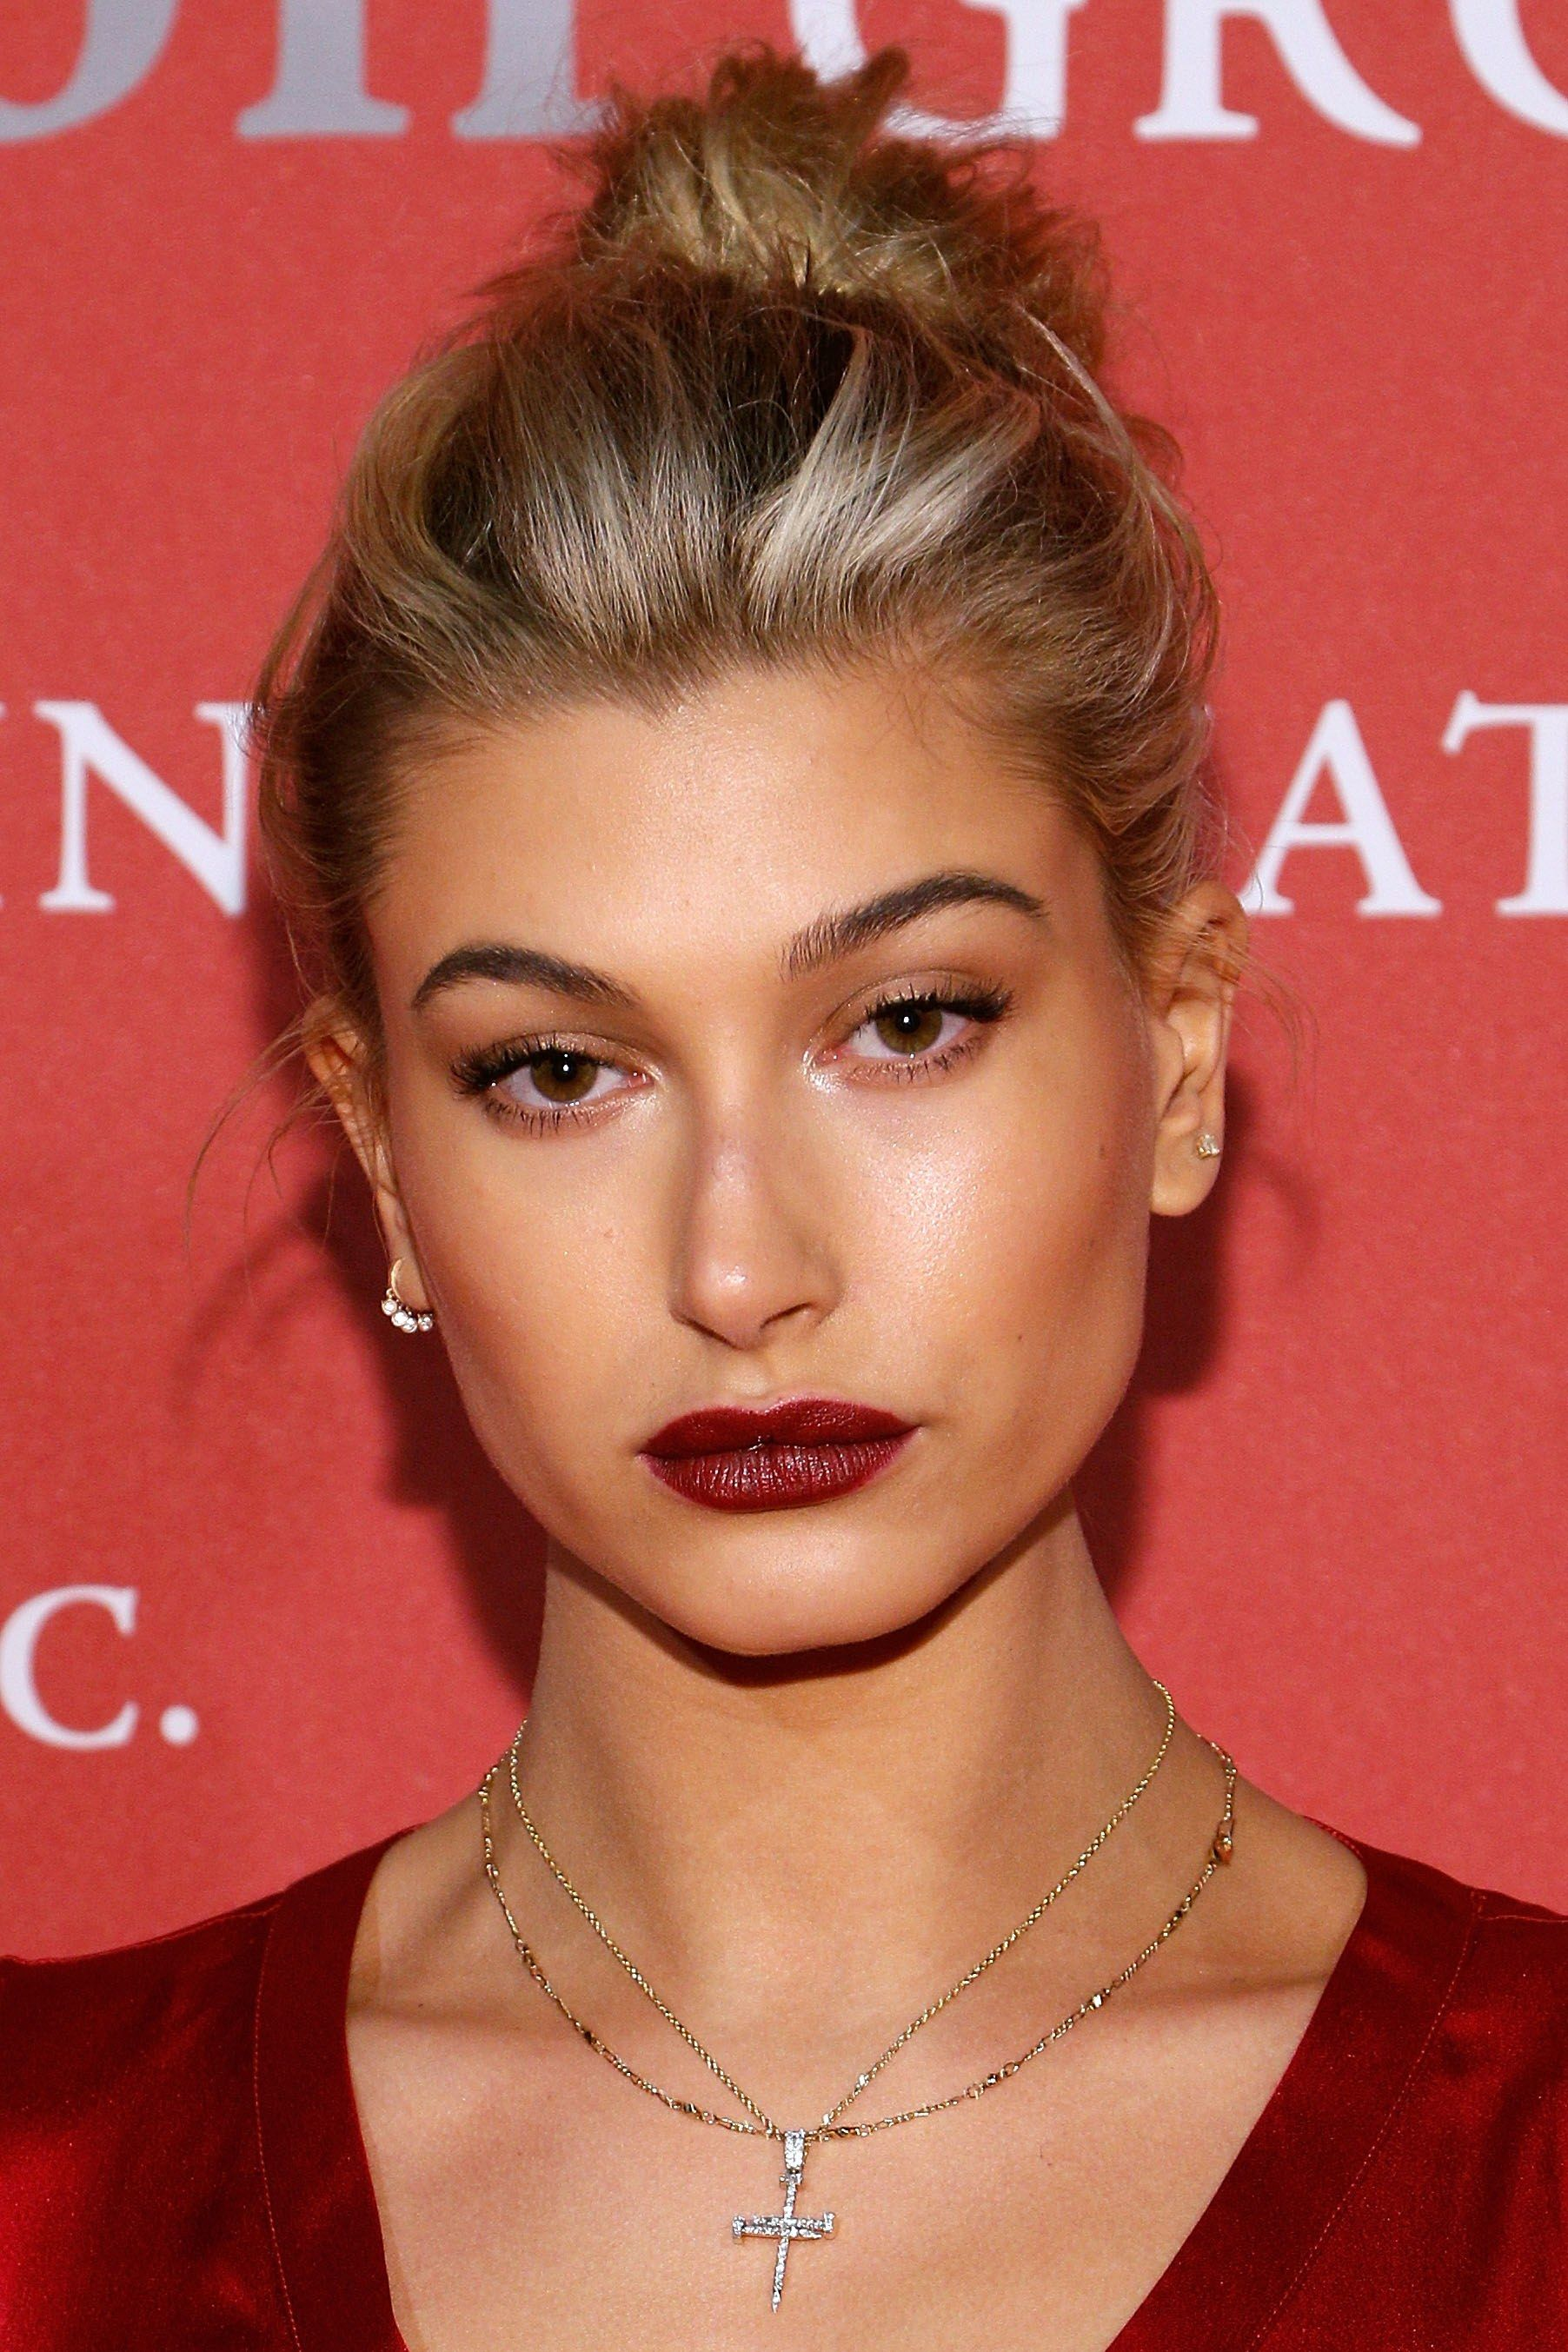 Hailey Baldwin's Best Beauty Looks Are Serious Inspo